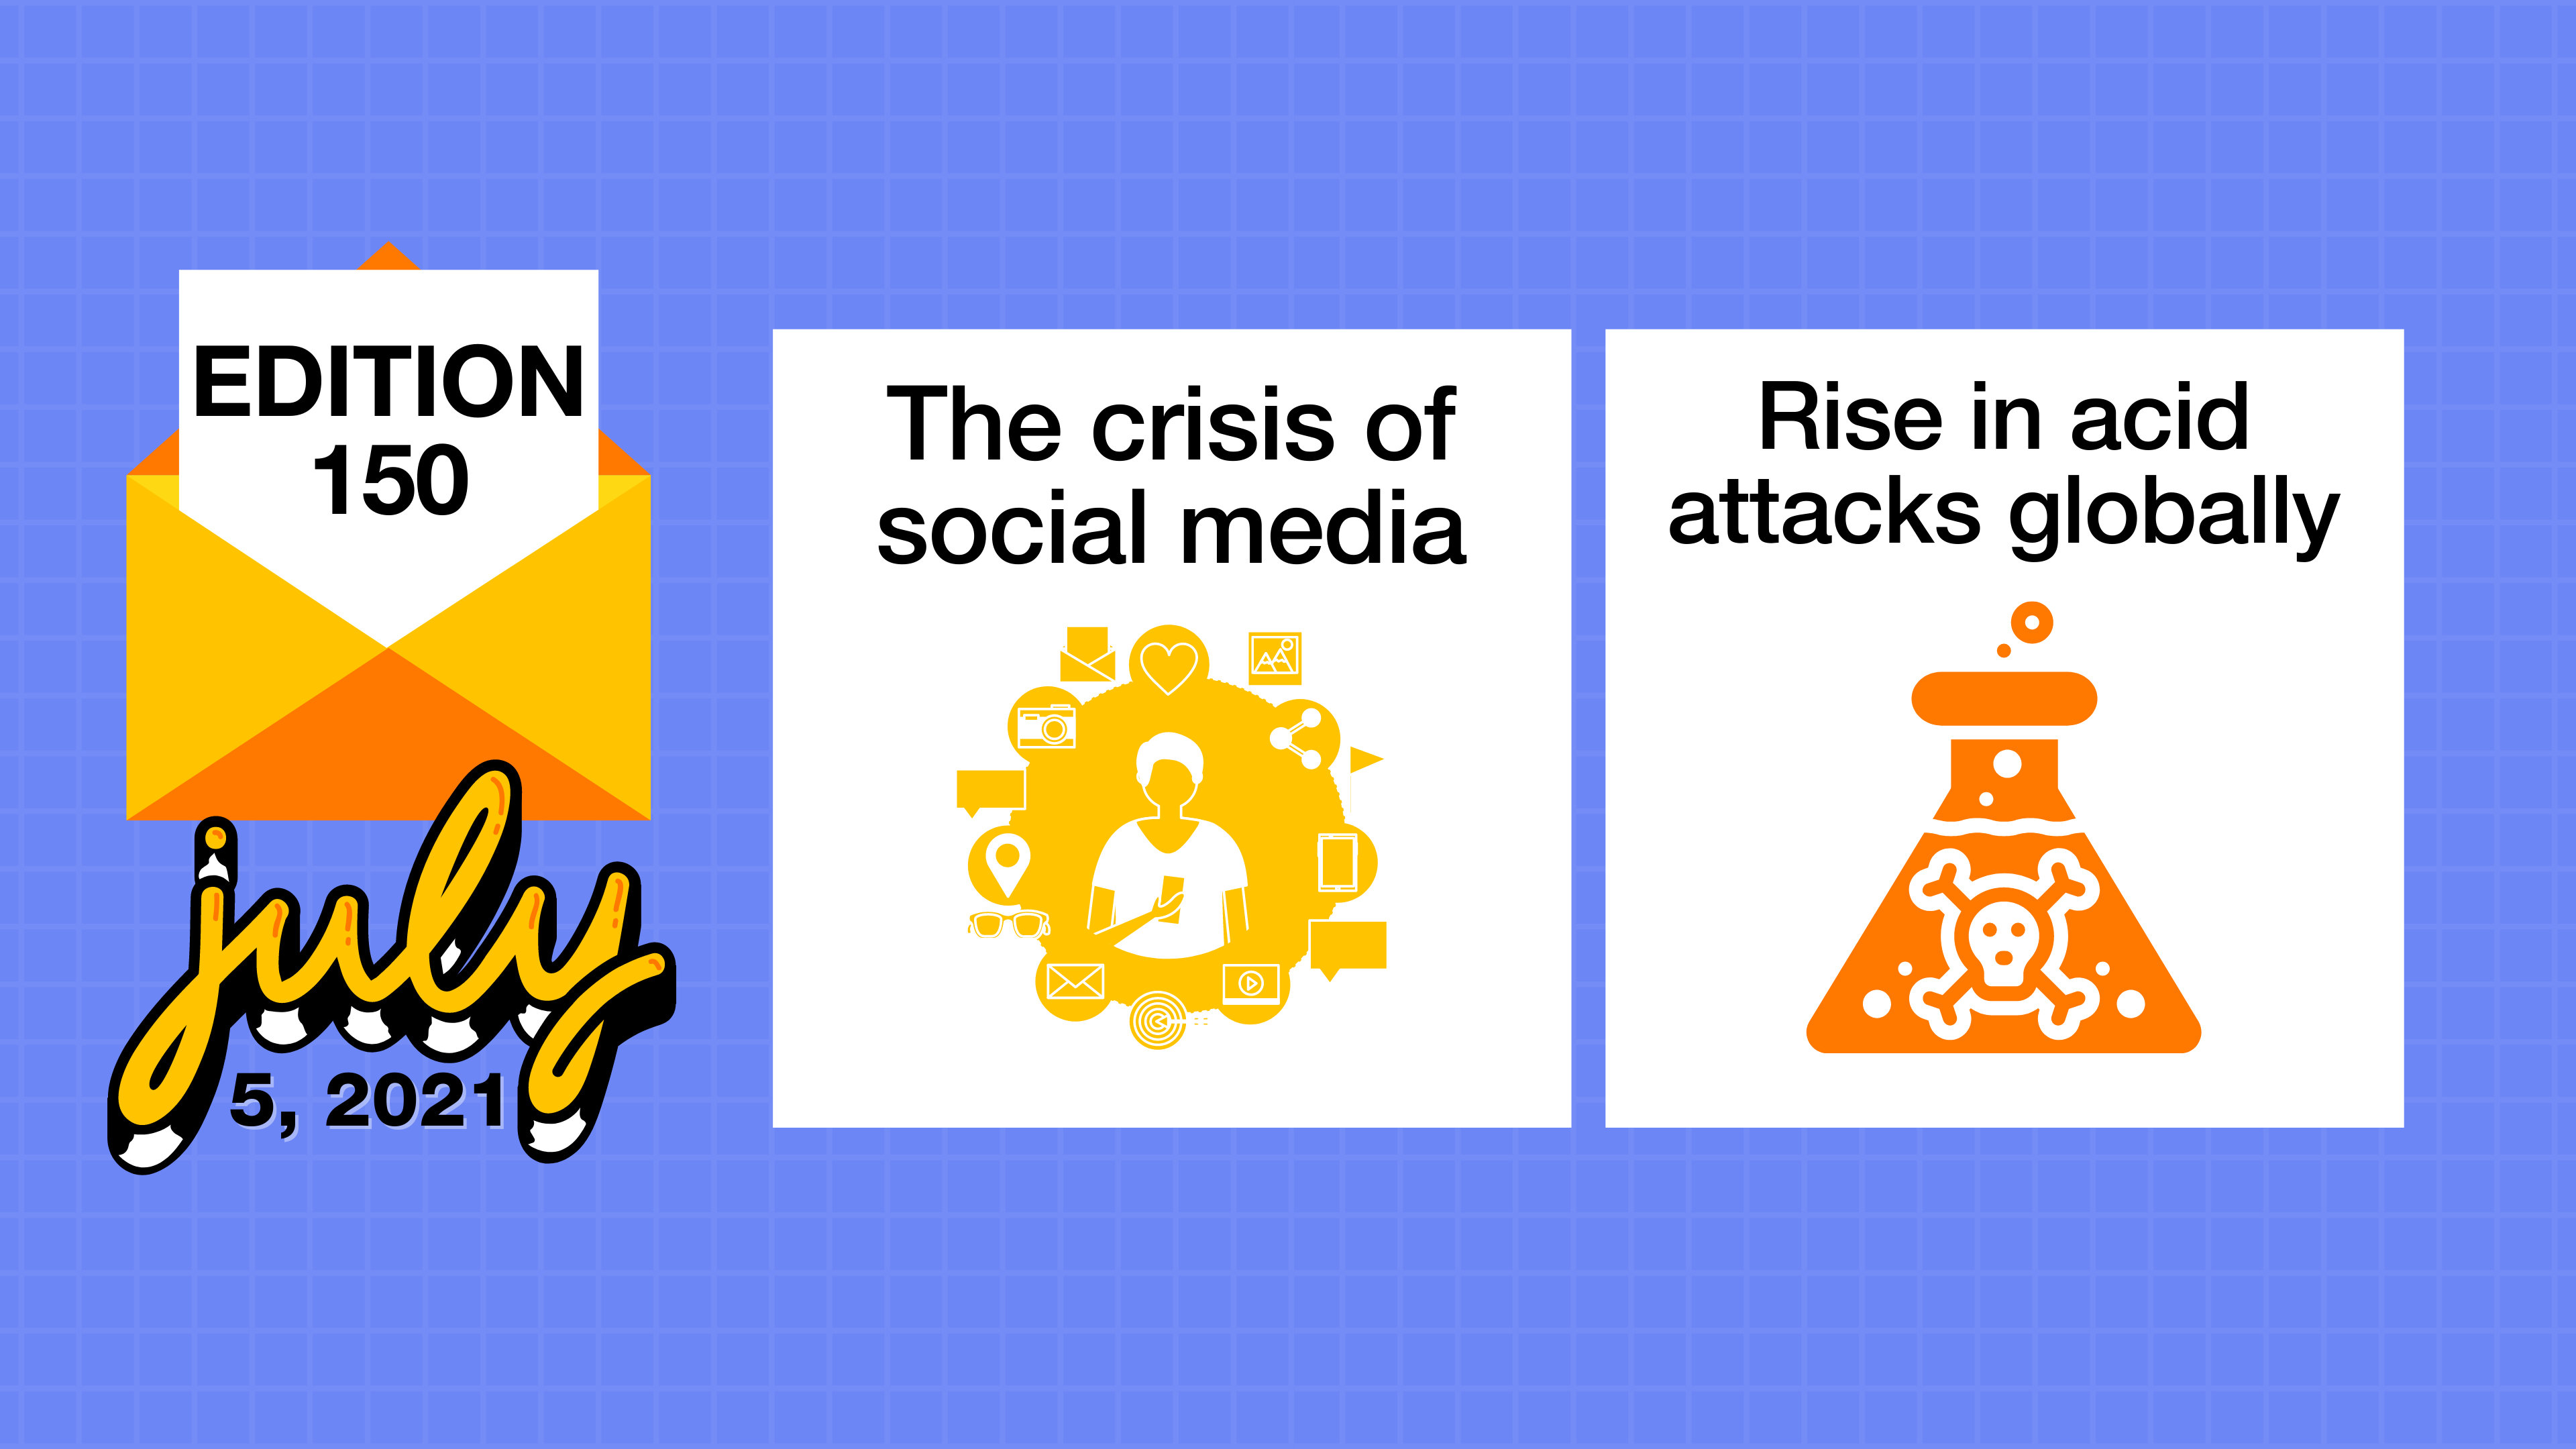 The crisis of social media and rise in acid attacks globally